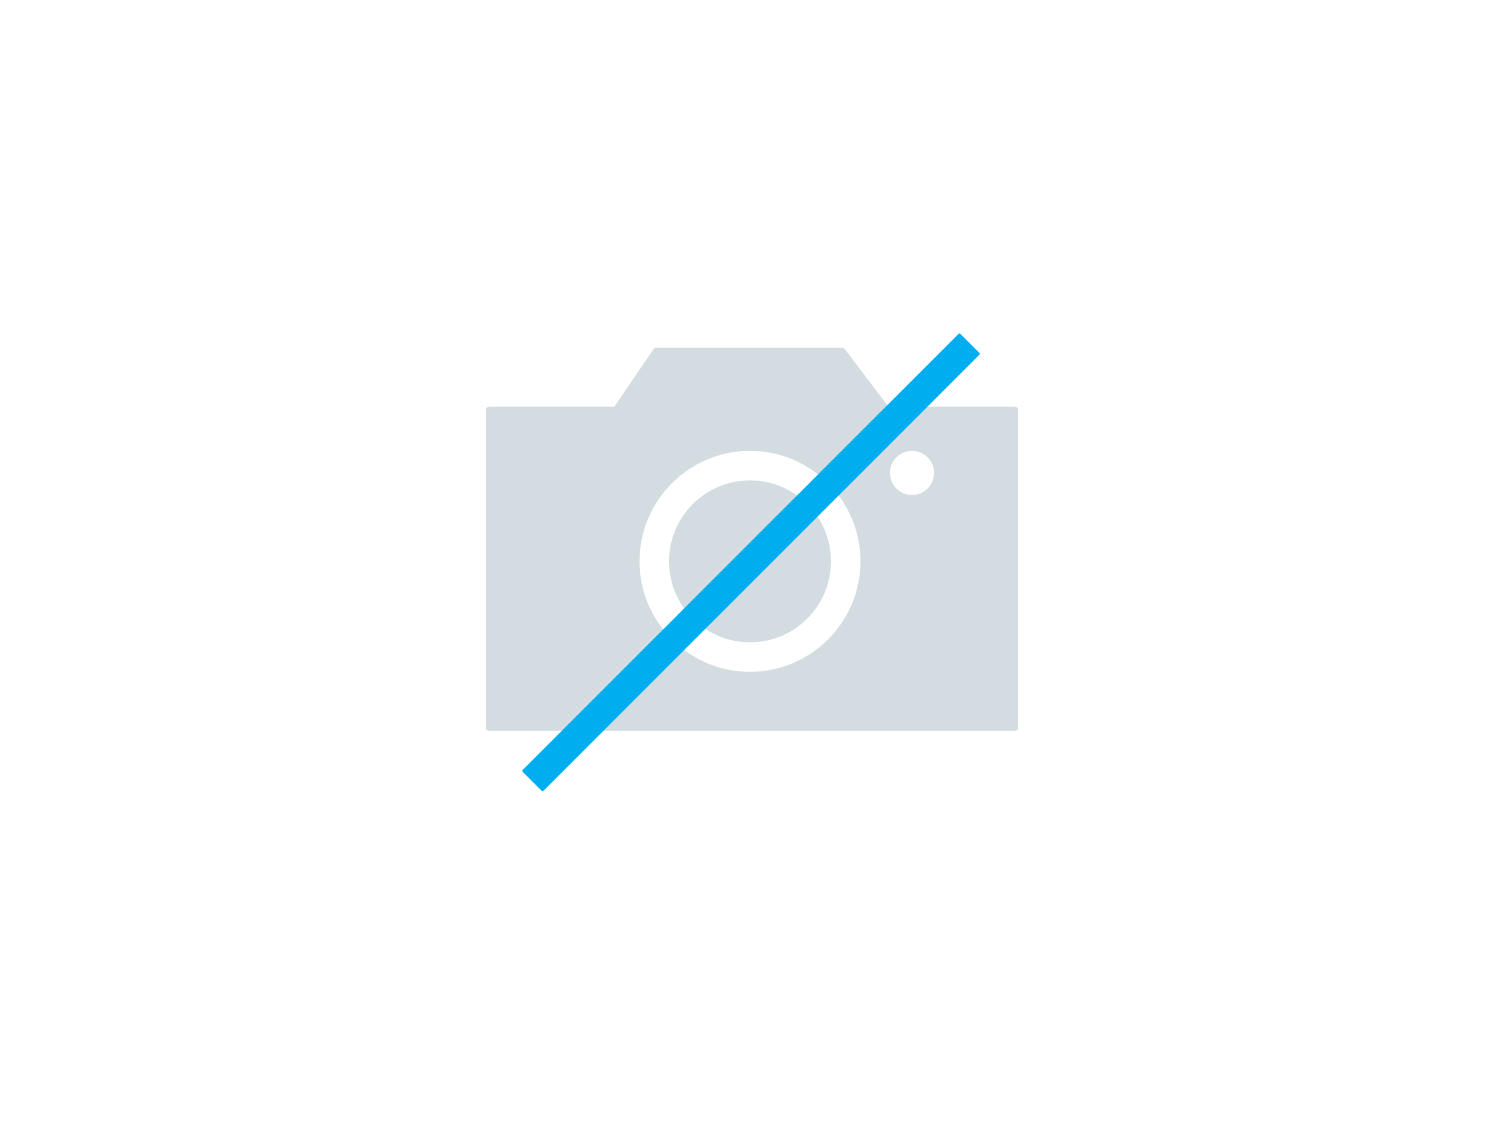 tapis de bain shaggy 60x60cm gris weba meubles. Black Bedroom Furniture Sets. Home Design Ideas